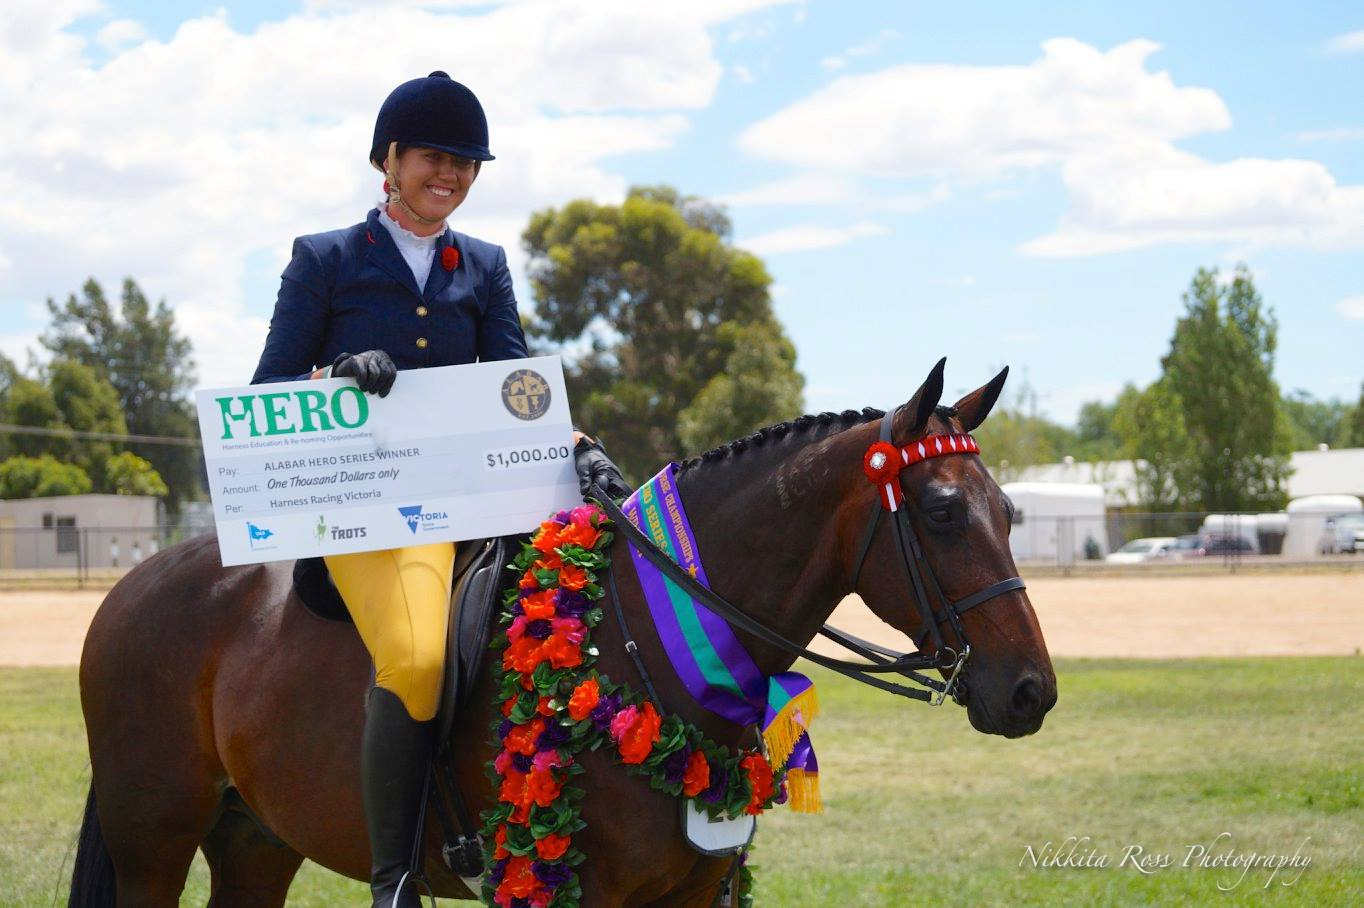 Eboni Knights and Equity Wizzbang take home $1000 and the title of Winner of the HERO Final